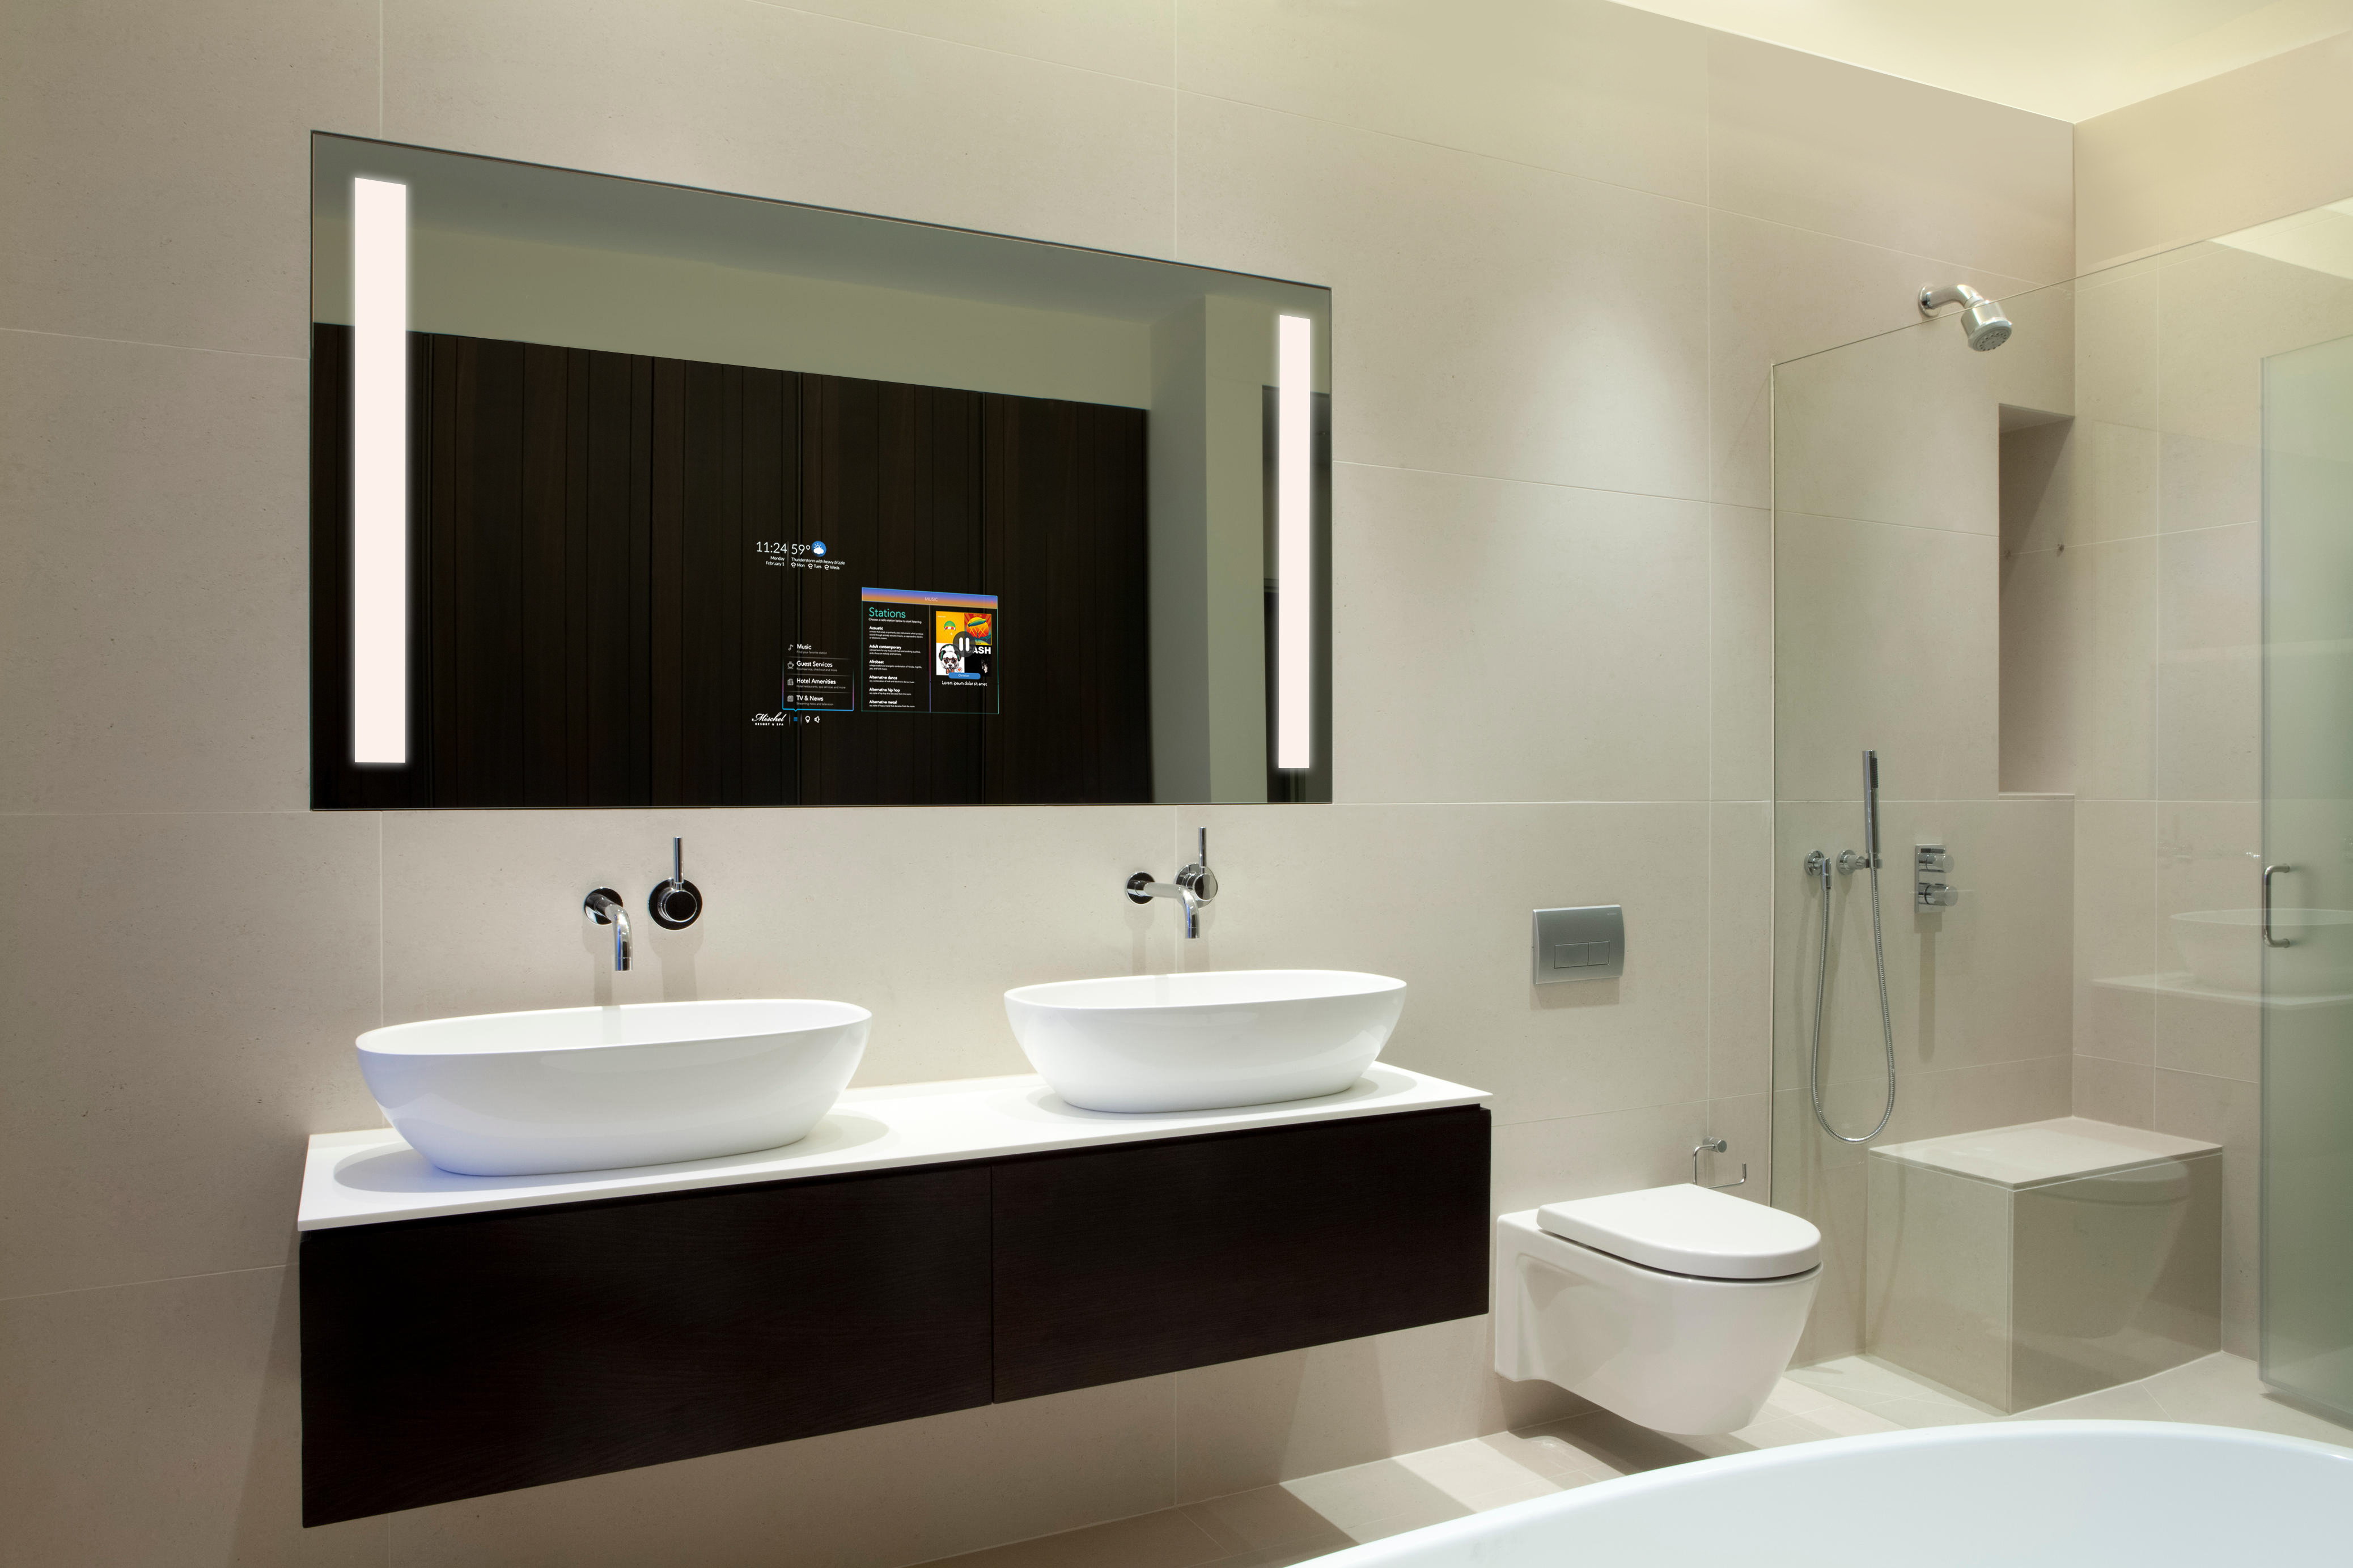 Image Available Marketwire Library MwGo 2017 5 1 11G137493 Images Smart Mirror Rendering 586c86d59cbc938e864272c59830c174